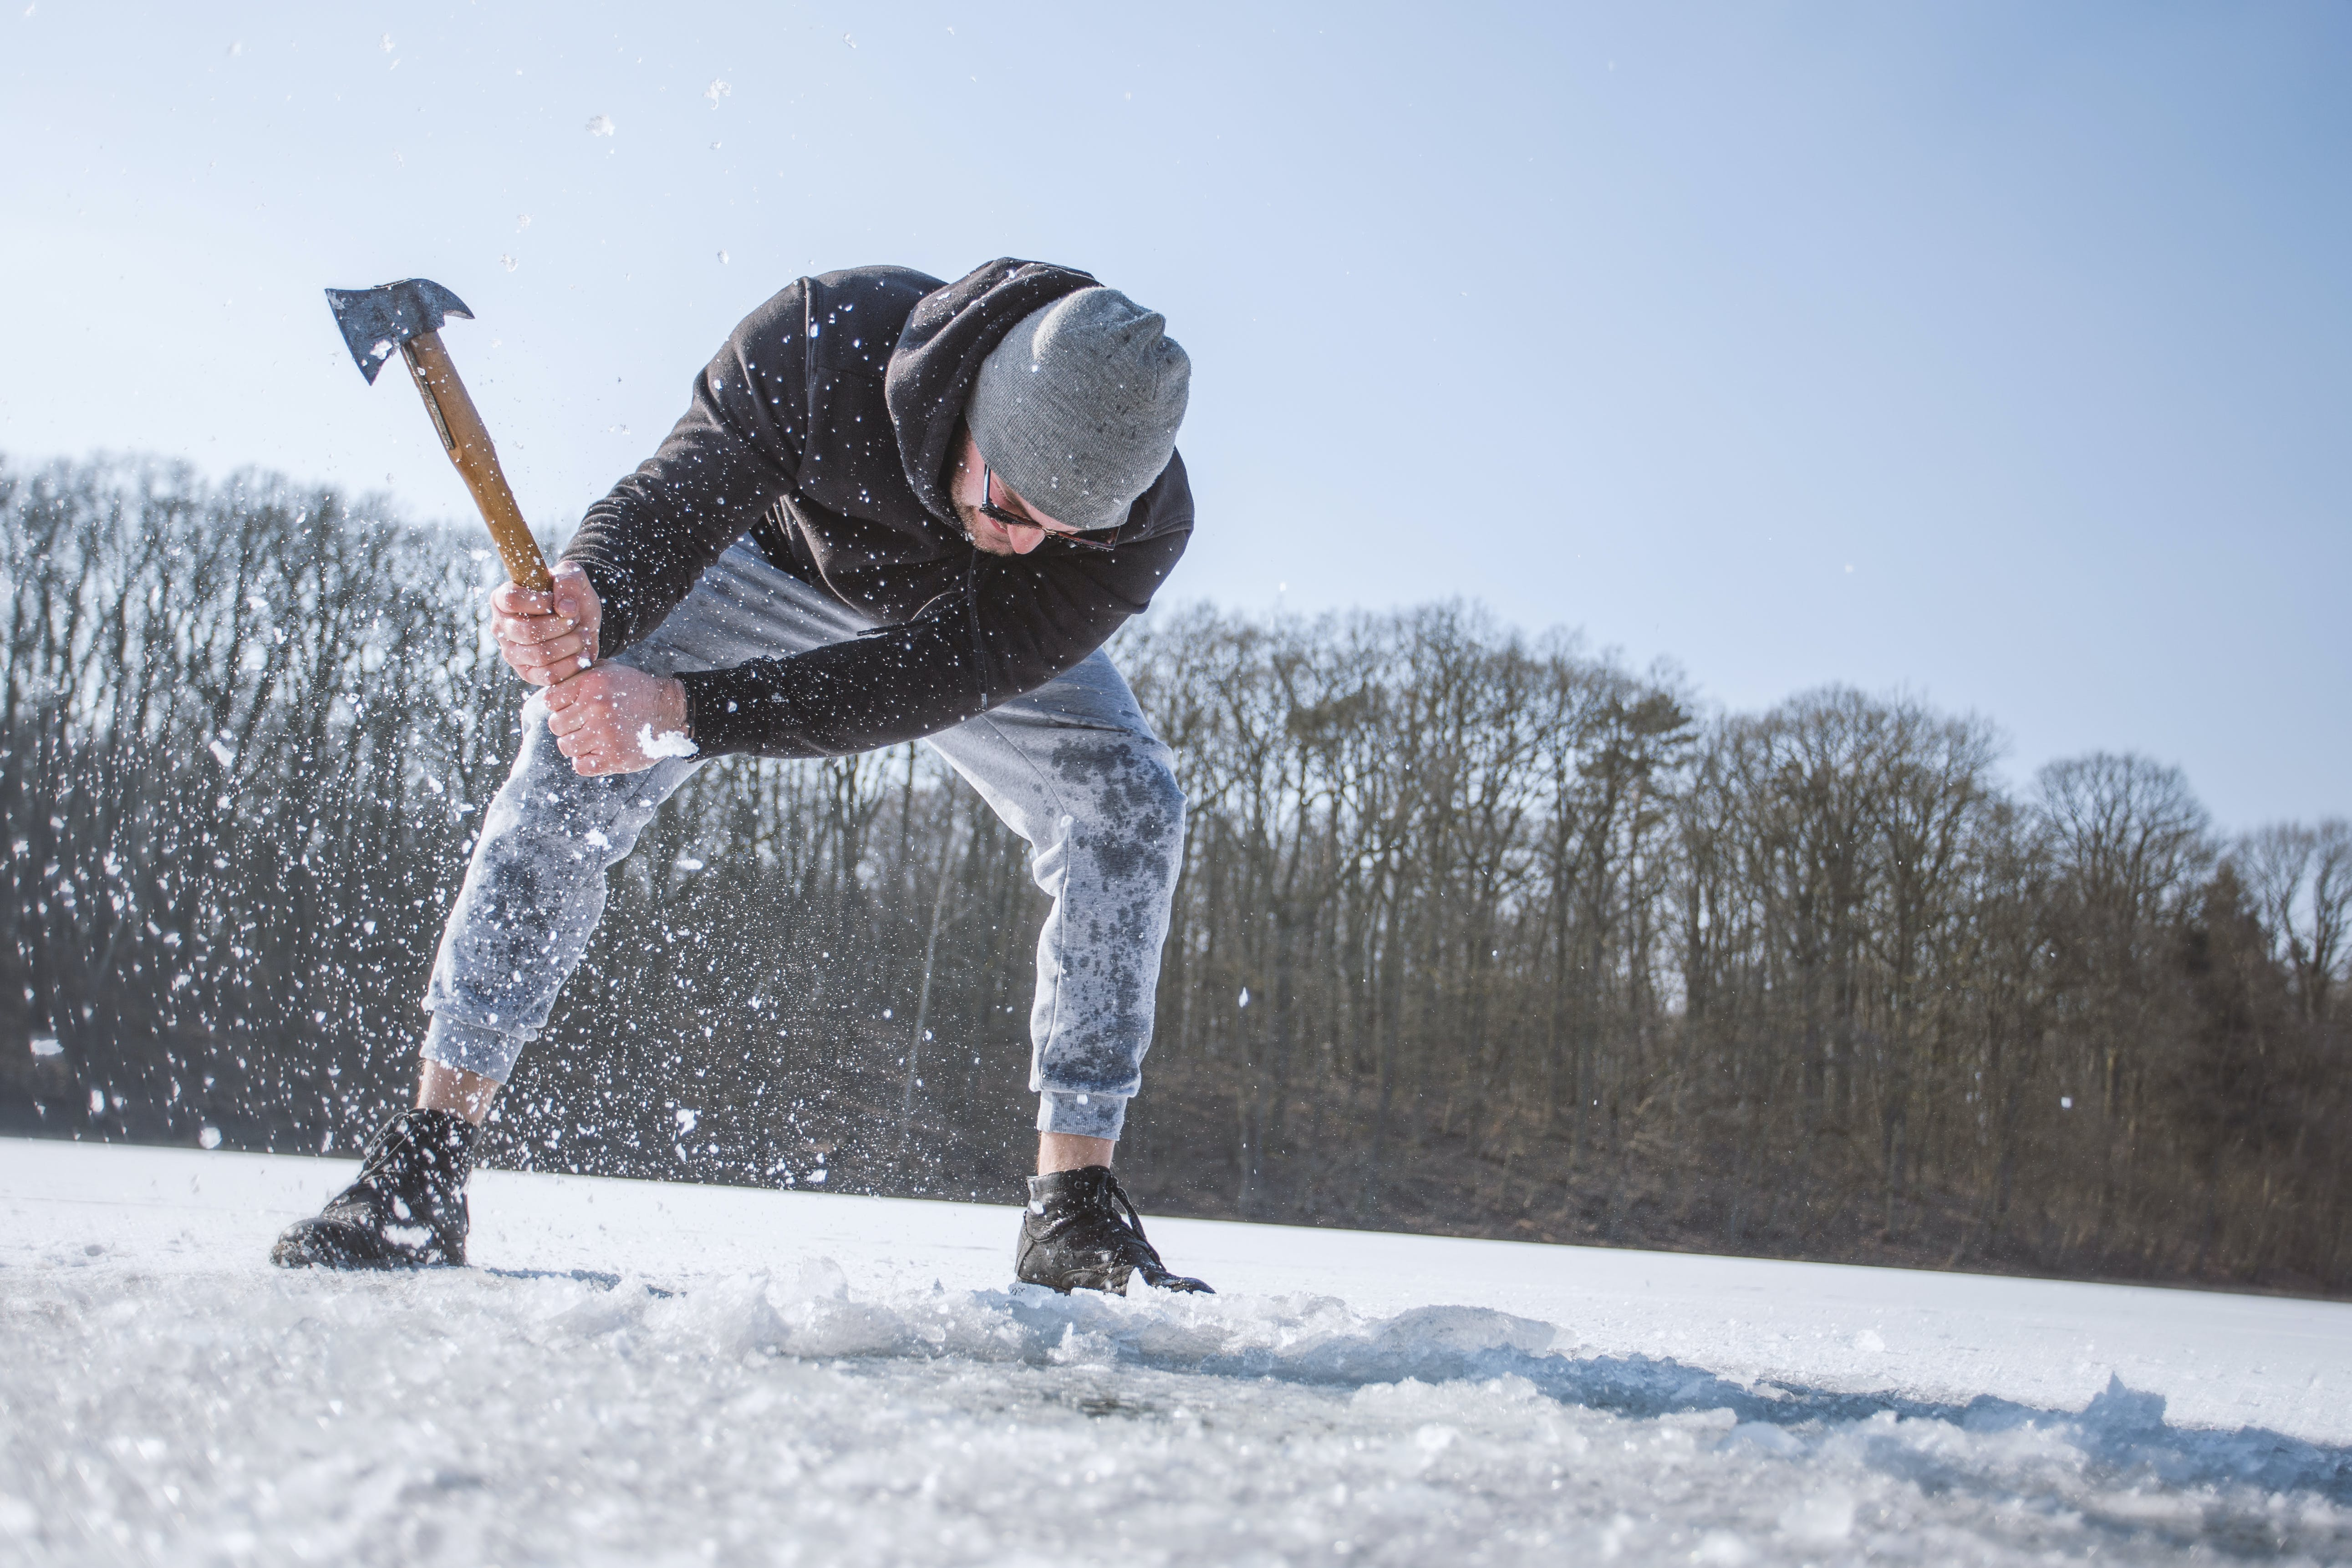 Man Wearing Black Hooded Jacket, Gray Knit Cap, Gray Pants, and Black Shoes Holding Brown Handled Axe While Bending on Snow